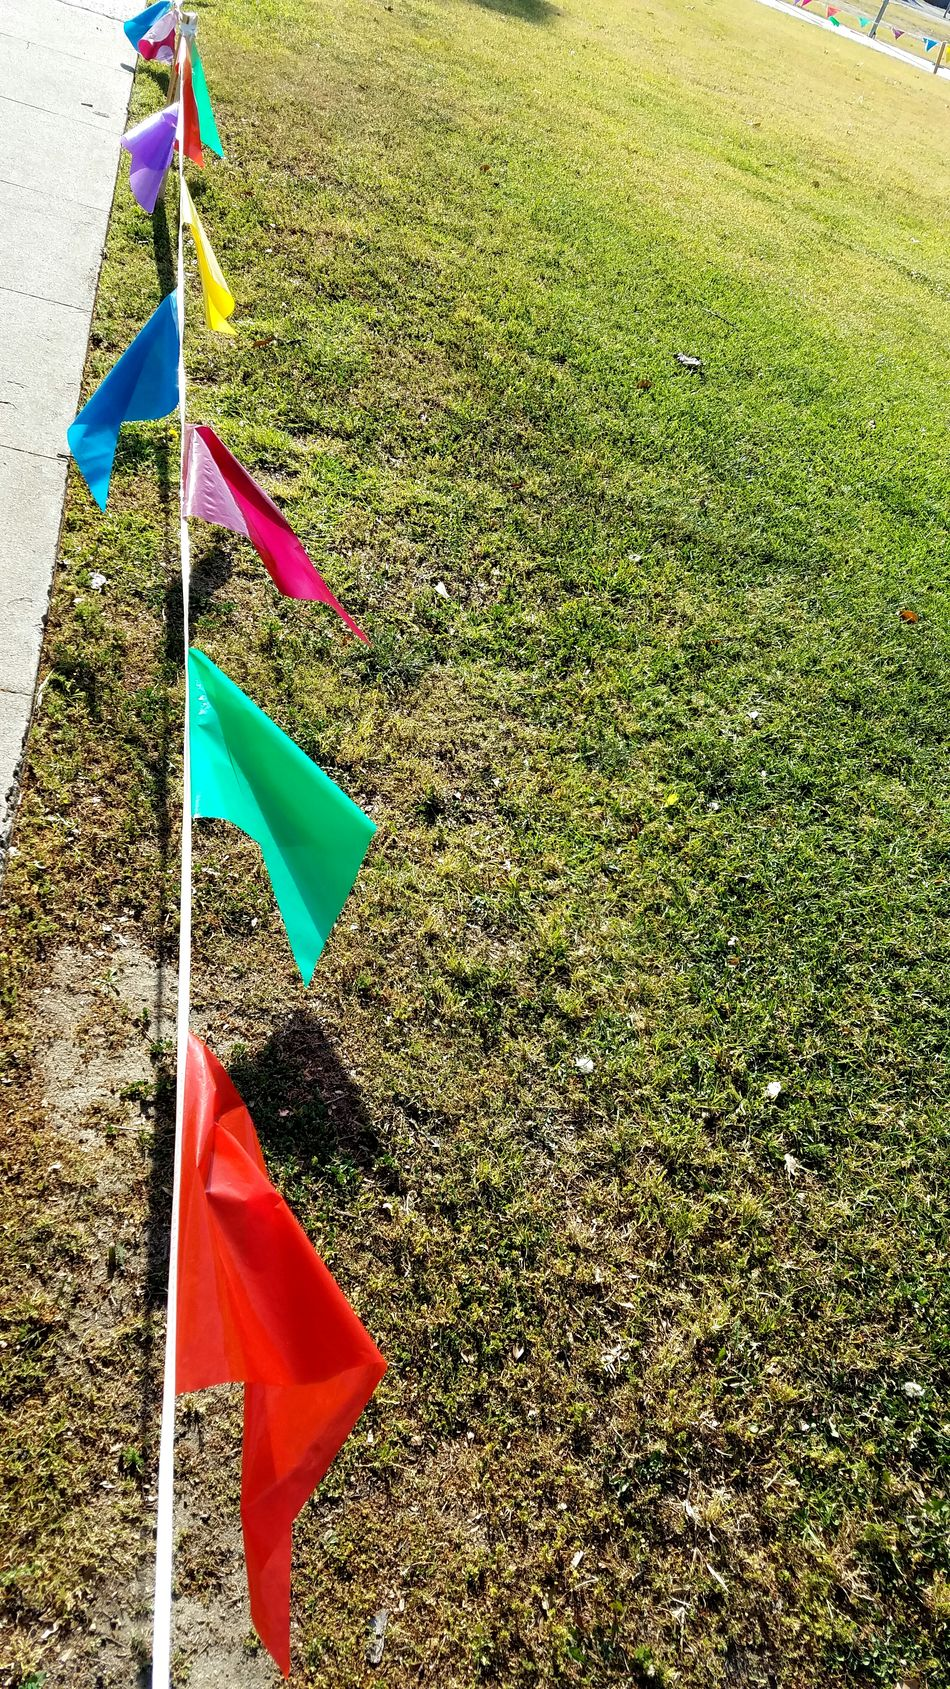 Ready, Set, Go! Flags Diversity Reflections And Shadows Colour Of Life Multicolored BackgroundRaceOutdoors No People Flag Fine Art Photgraphy Perseverance Meditation Copy Space Still Life Photography Check This Out Simple Moment Tranquility PatternBlue Yellow Red Green EyeEm Diversity